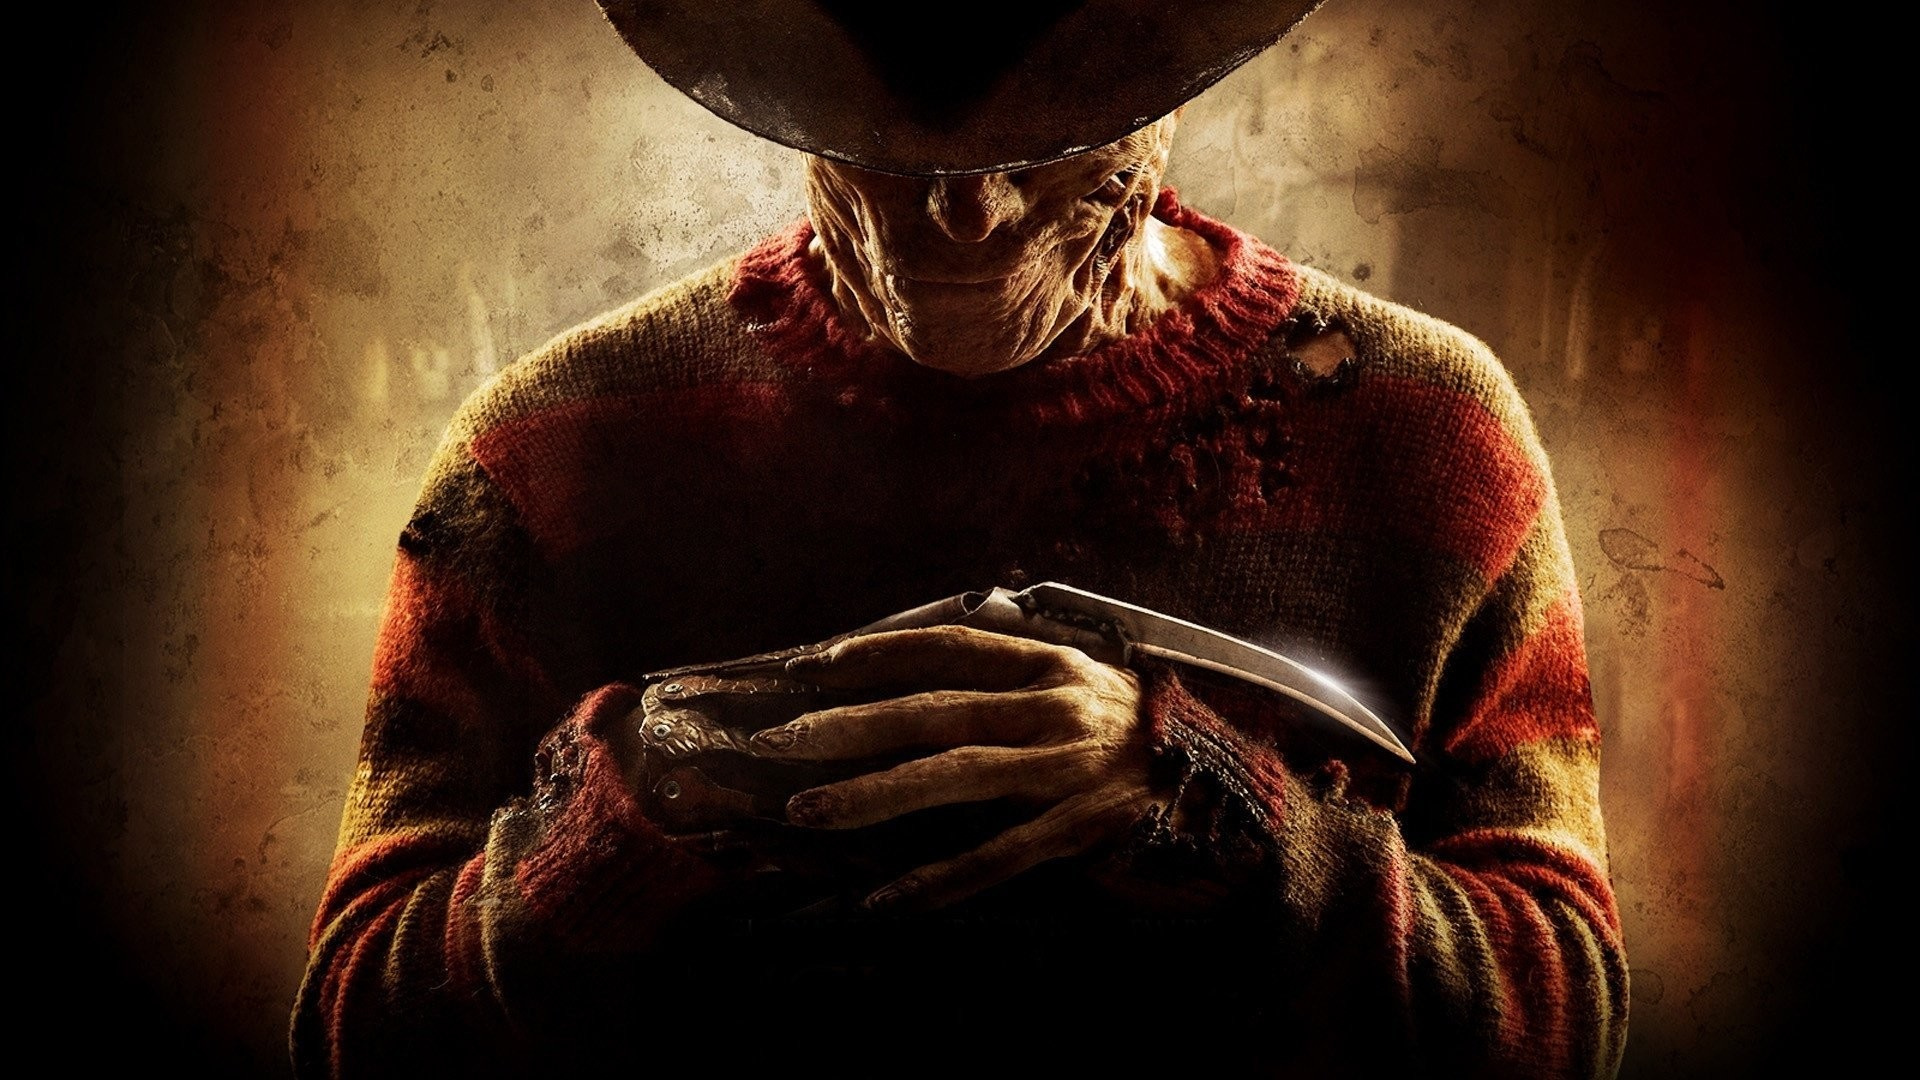 Freddy Krueger Wallpaper 2018 Wallpapertag